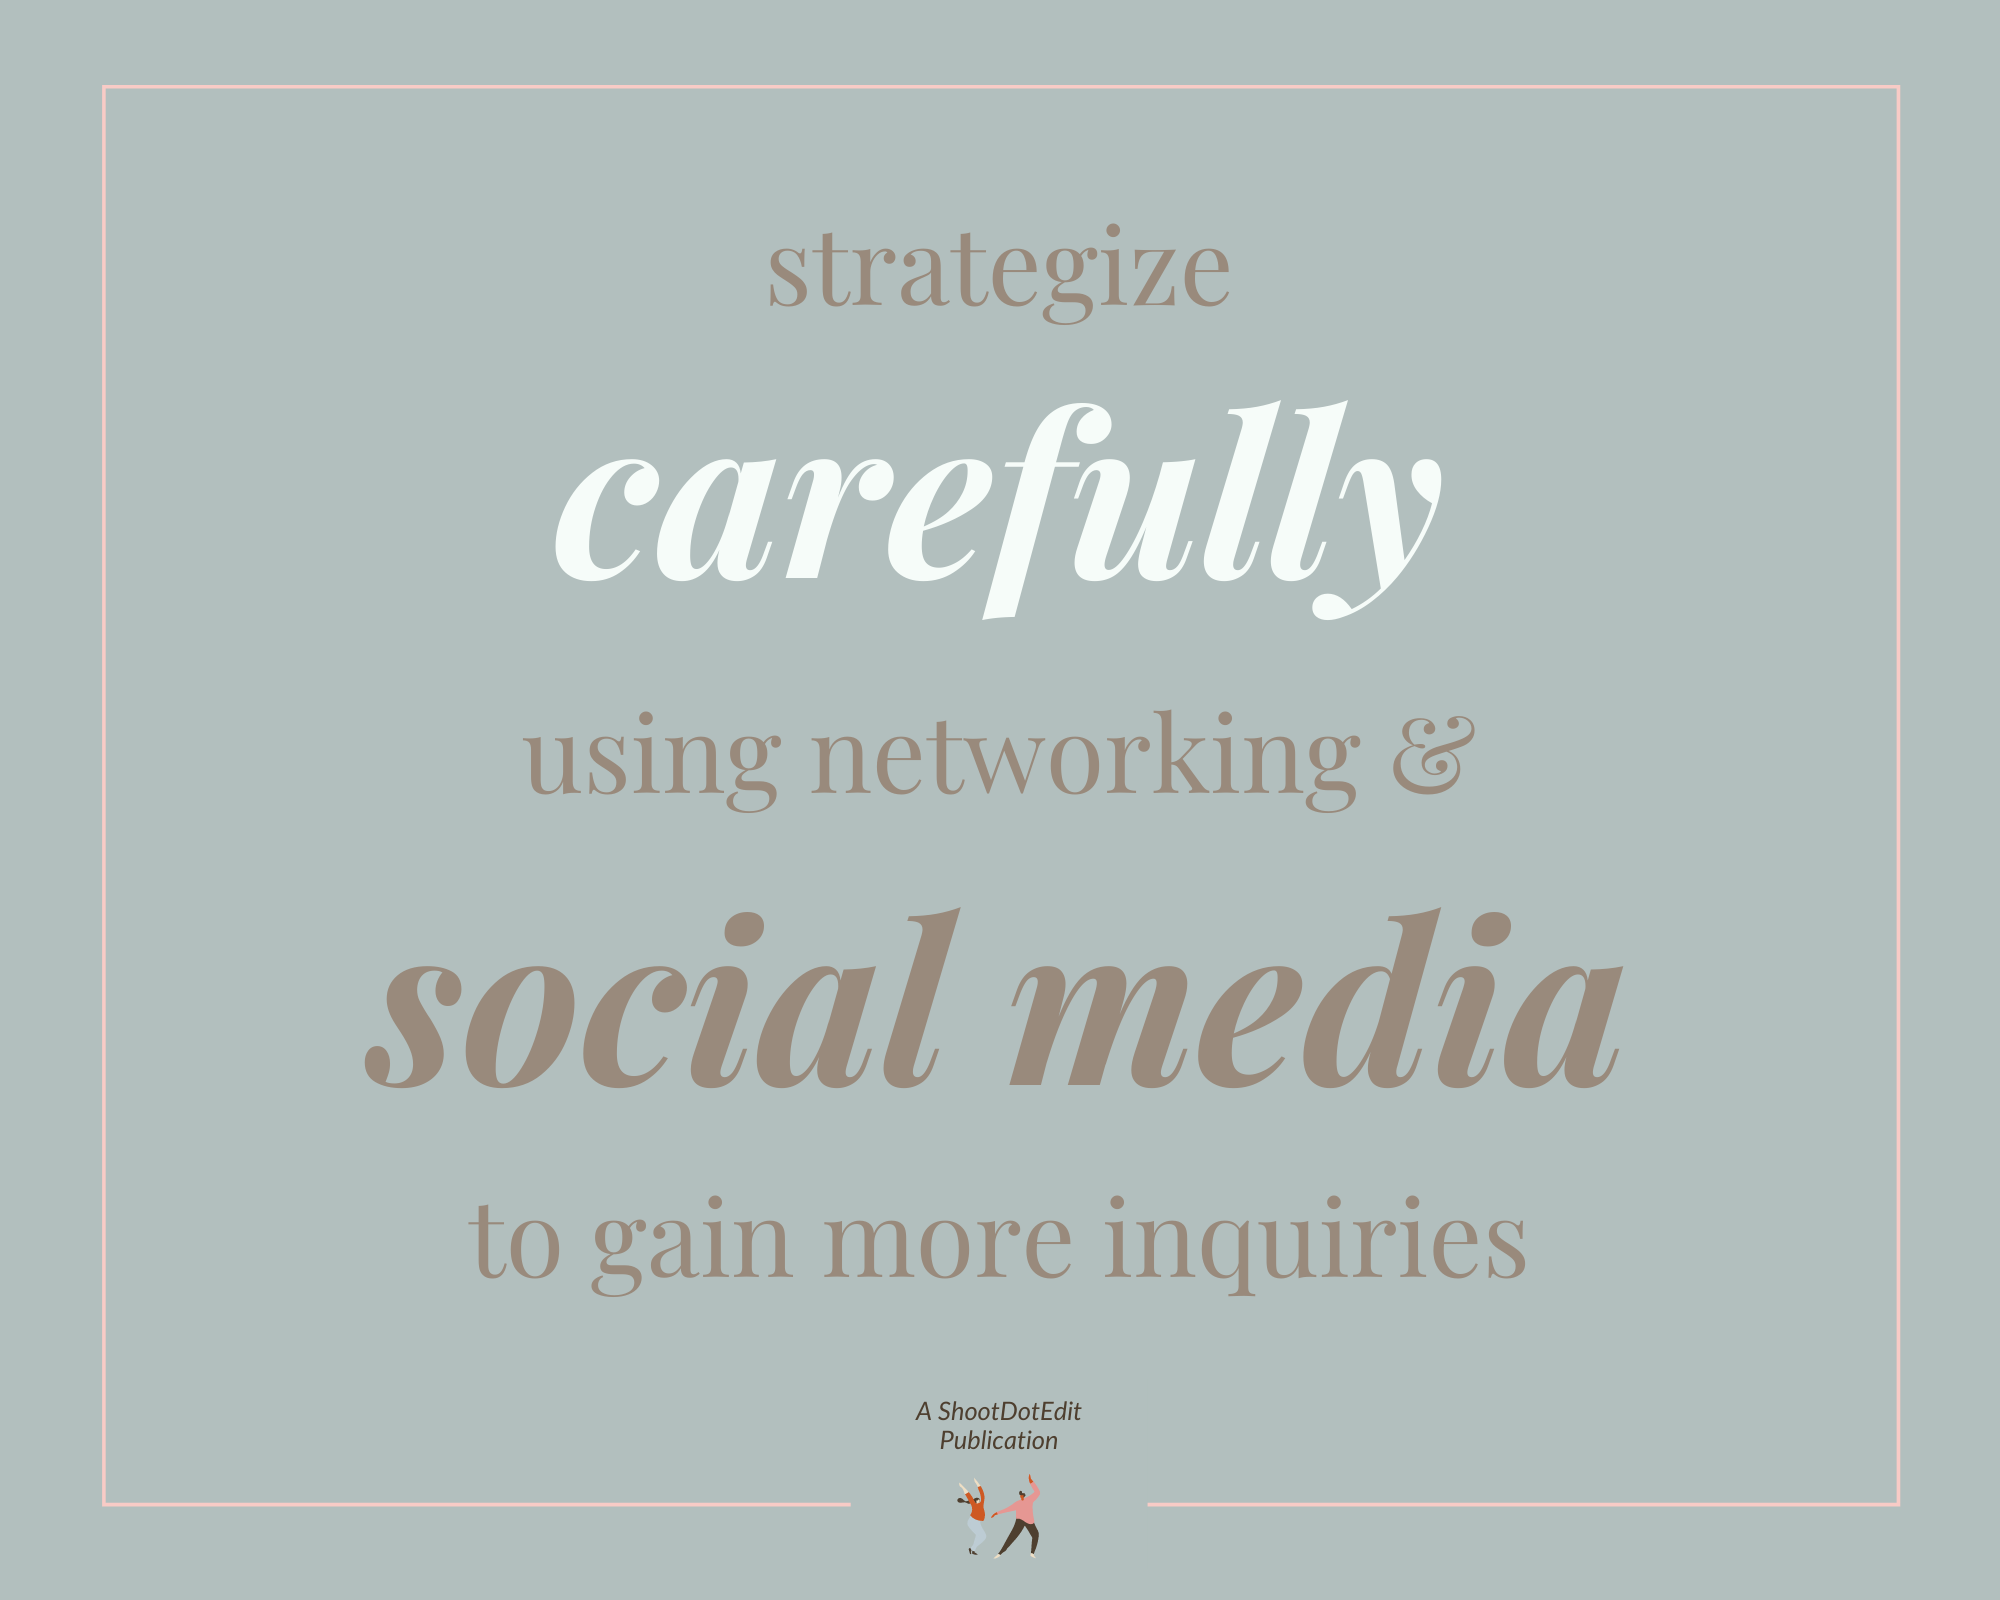 Infographic stating strategize carefully using networking and social media to gain more inquiries